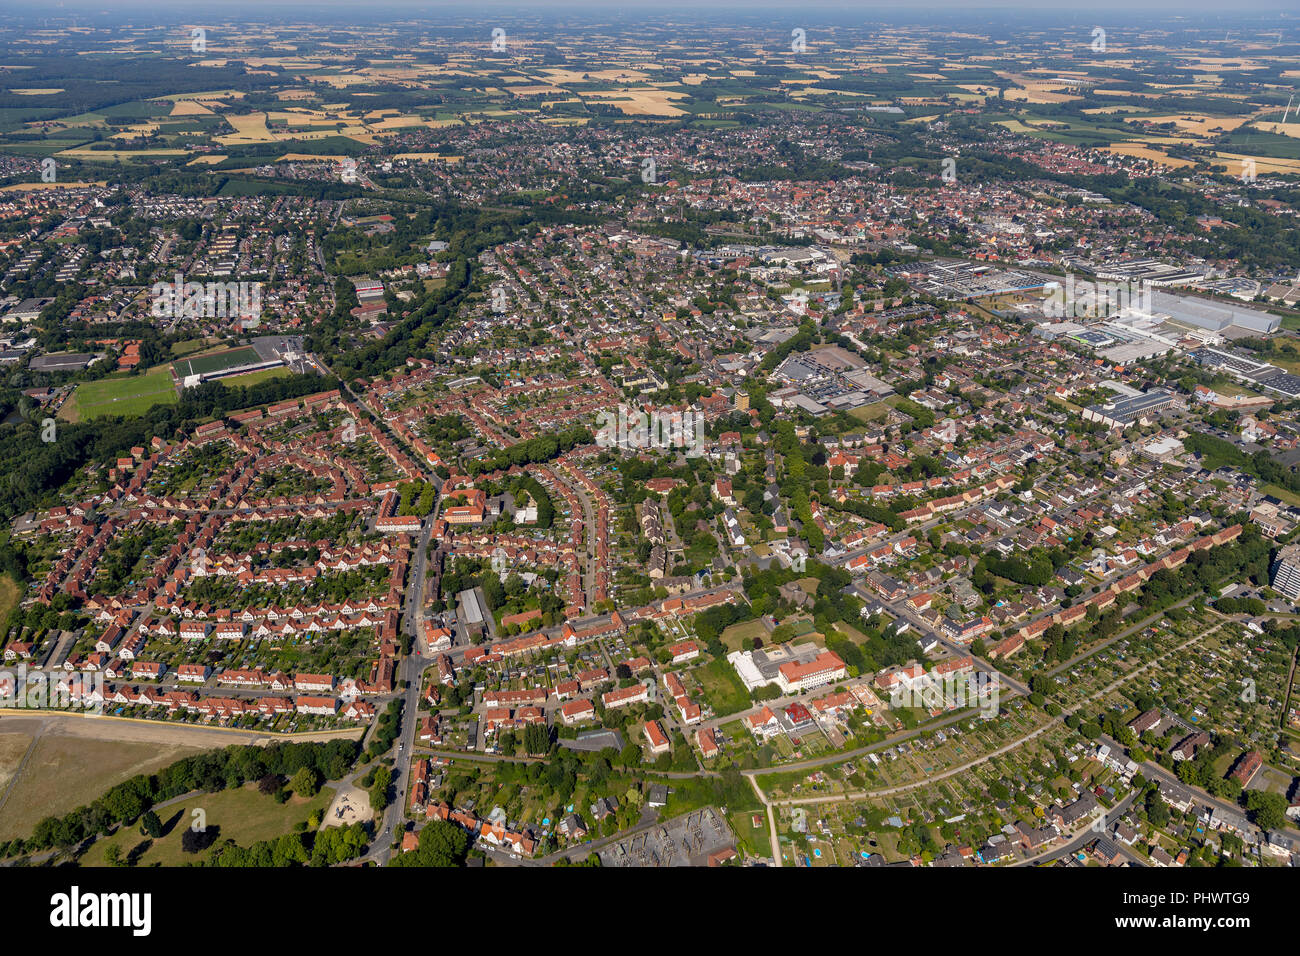 Rosendahl, Ahlen, Ruhrgebiet, North Rhine-Westphalia, Germany, DEU, Europe, aerial photograph, birds-eyes view, aerial photograph, aerial photography, - Stock Image